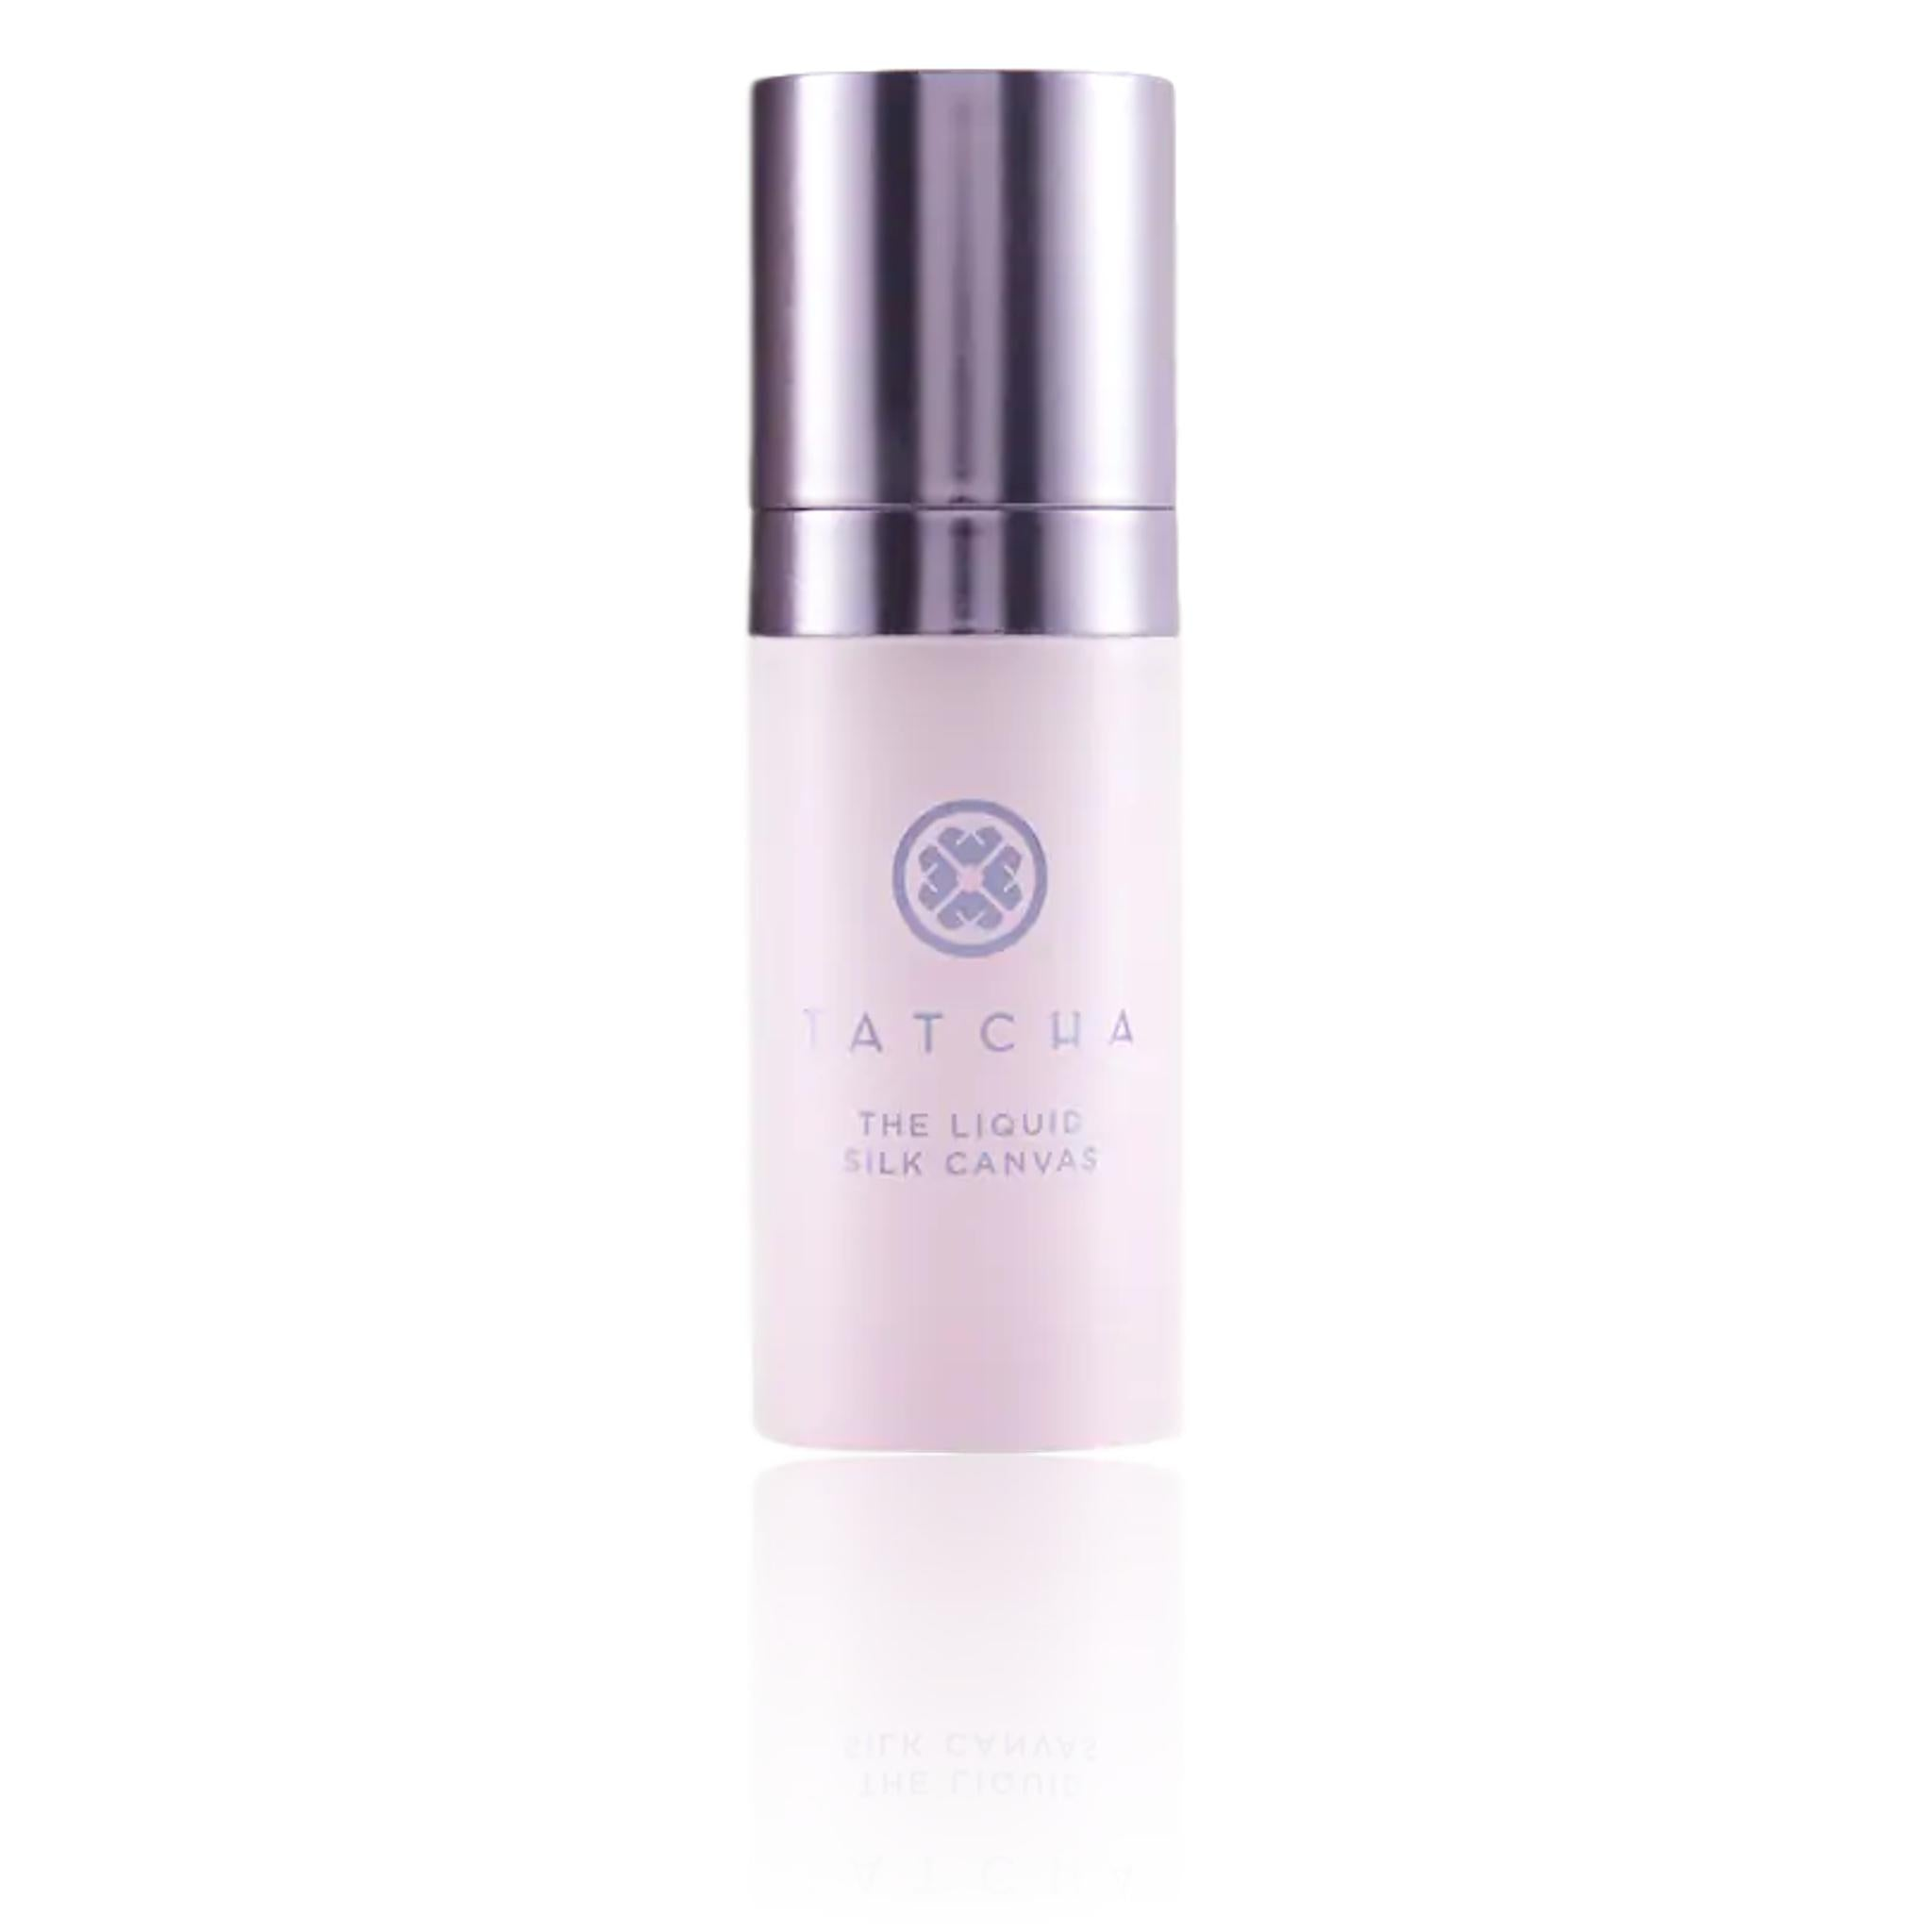 TATCHA Mini Liquid Silk Canvas Featherweight Protective Primer, 0.35 oz | 10g, primer, London Loves Beauty